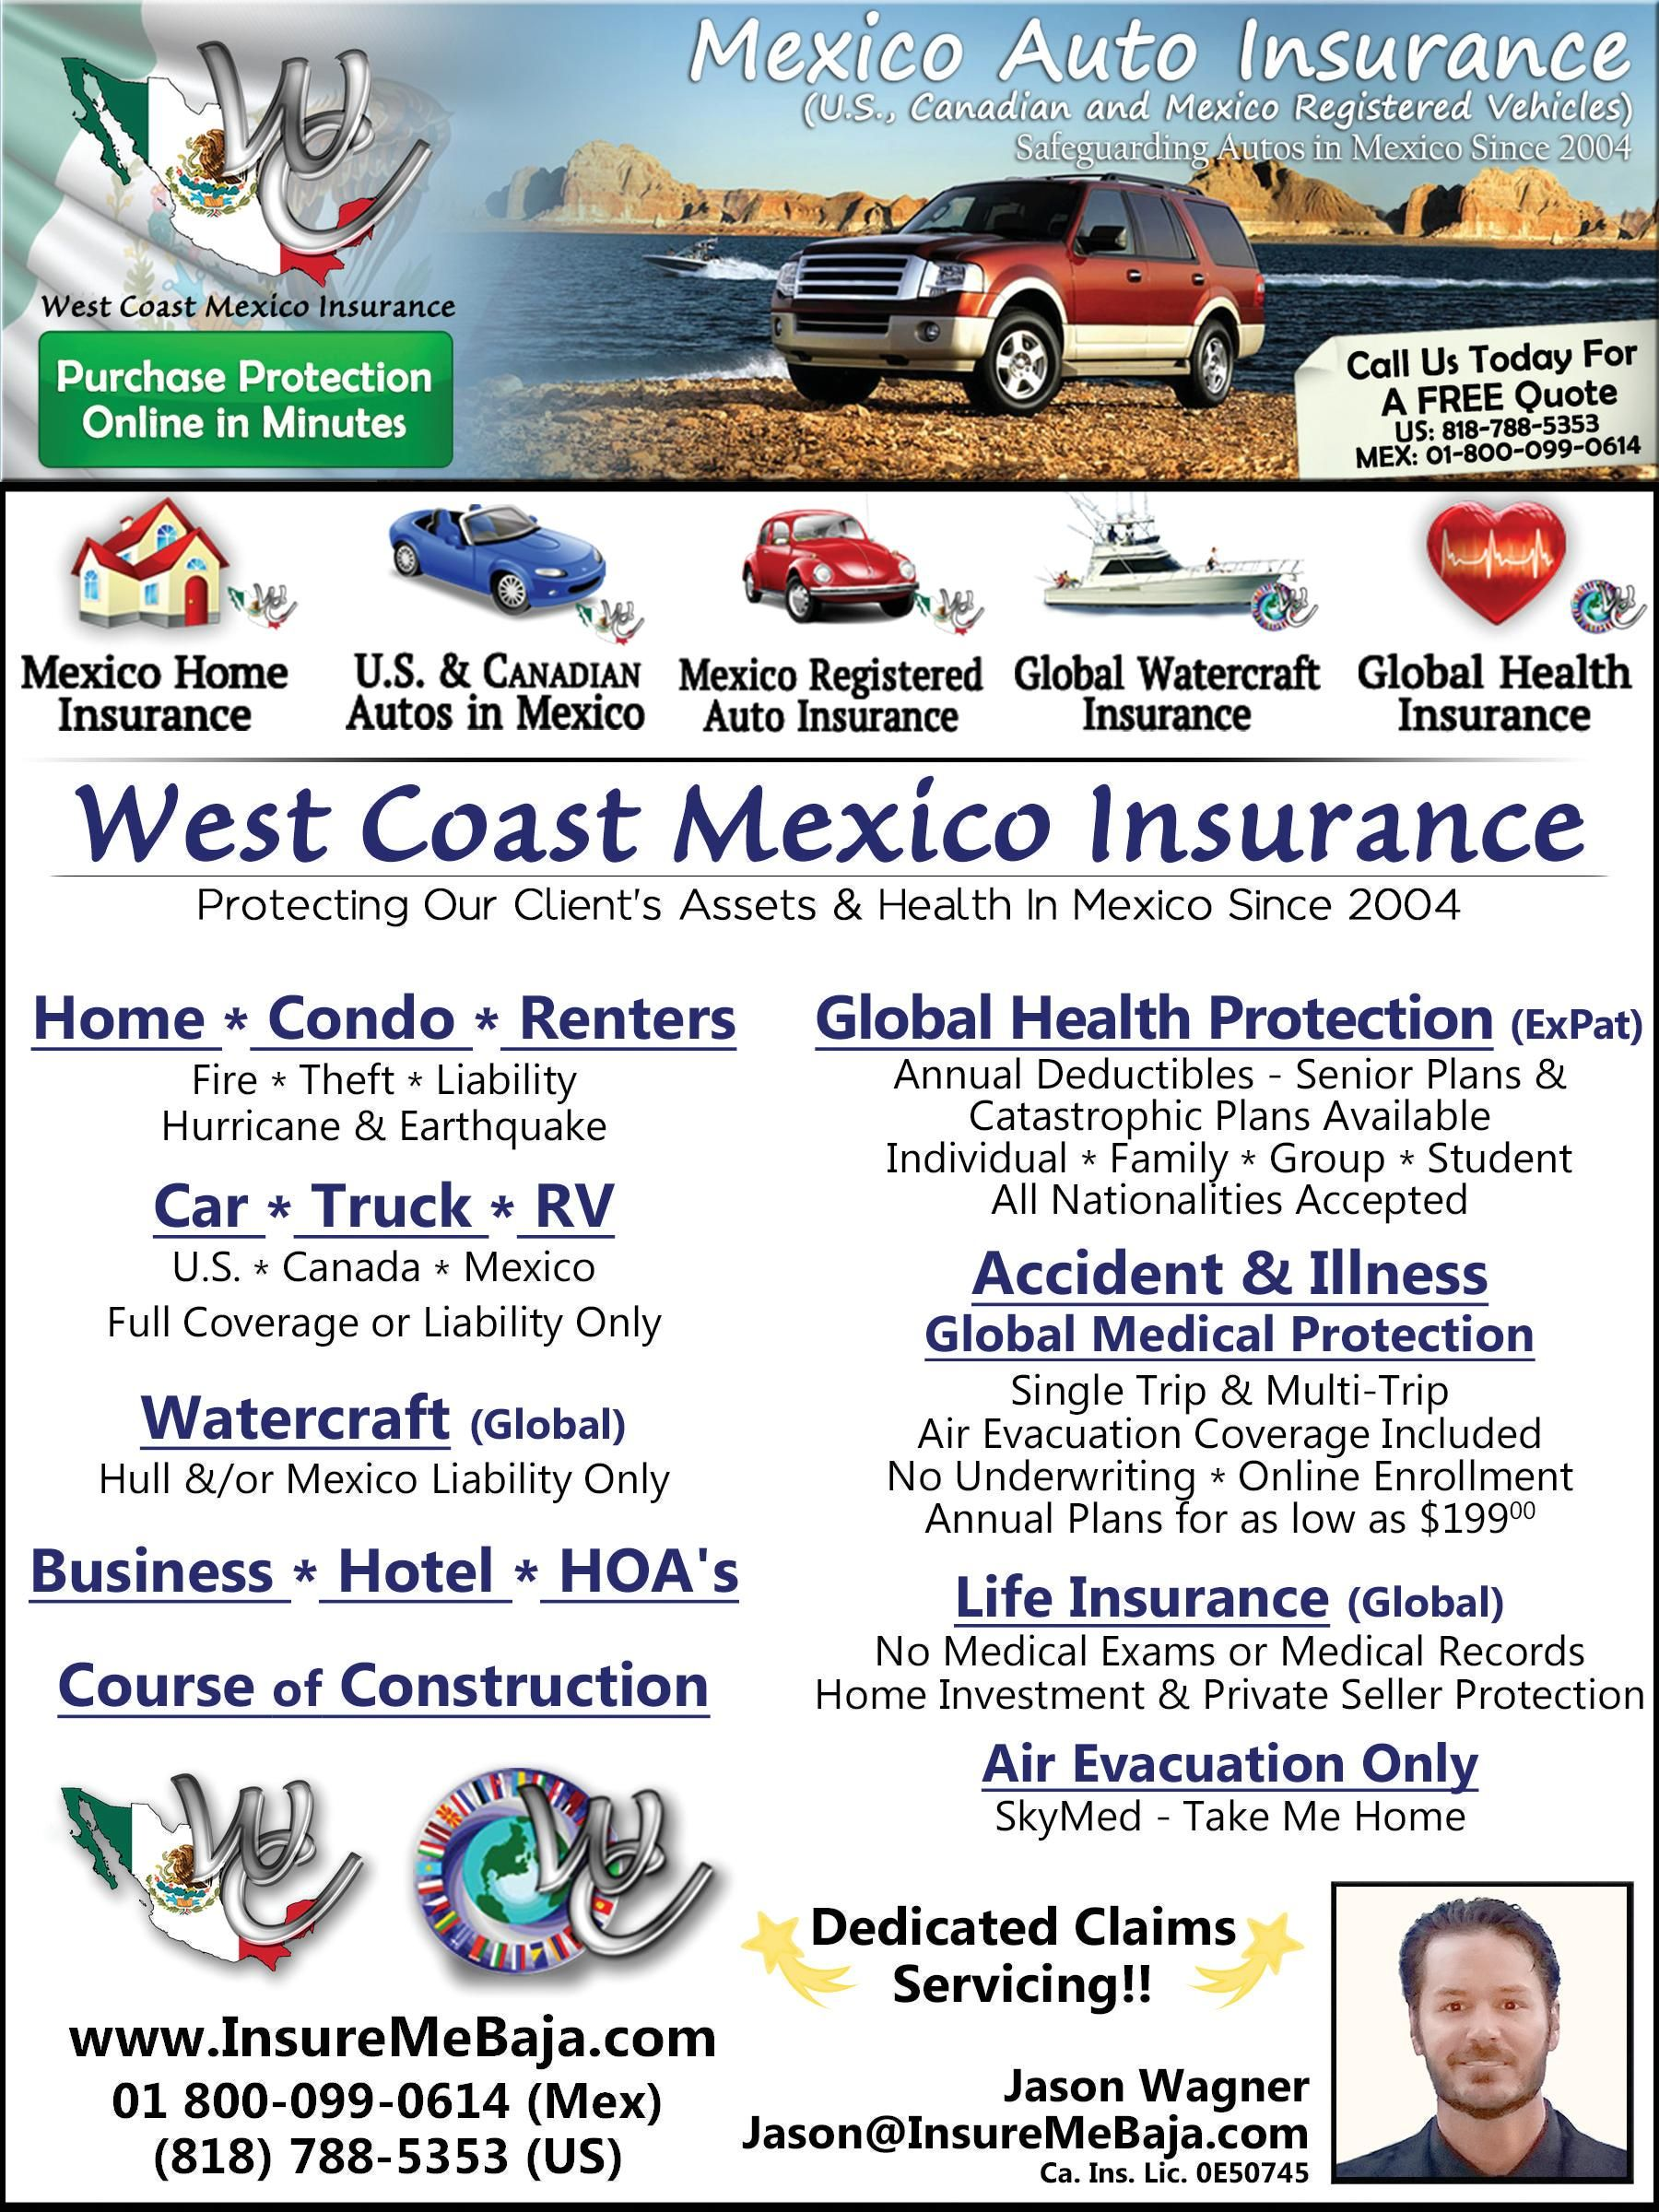 Mexico Auto Insurance Free Quotes In Minutes Get A Free Quote At